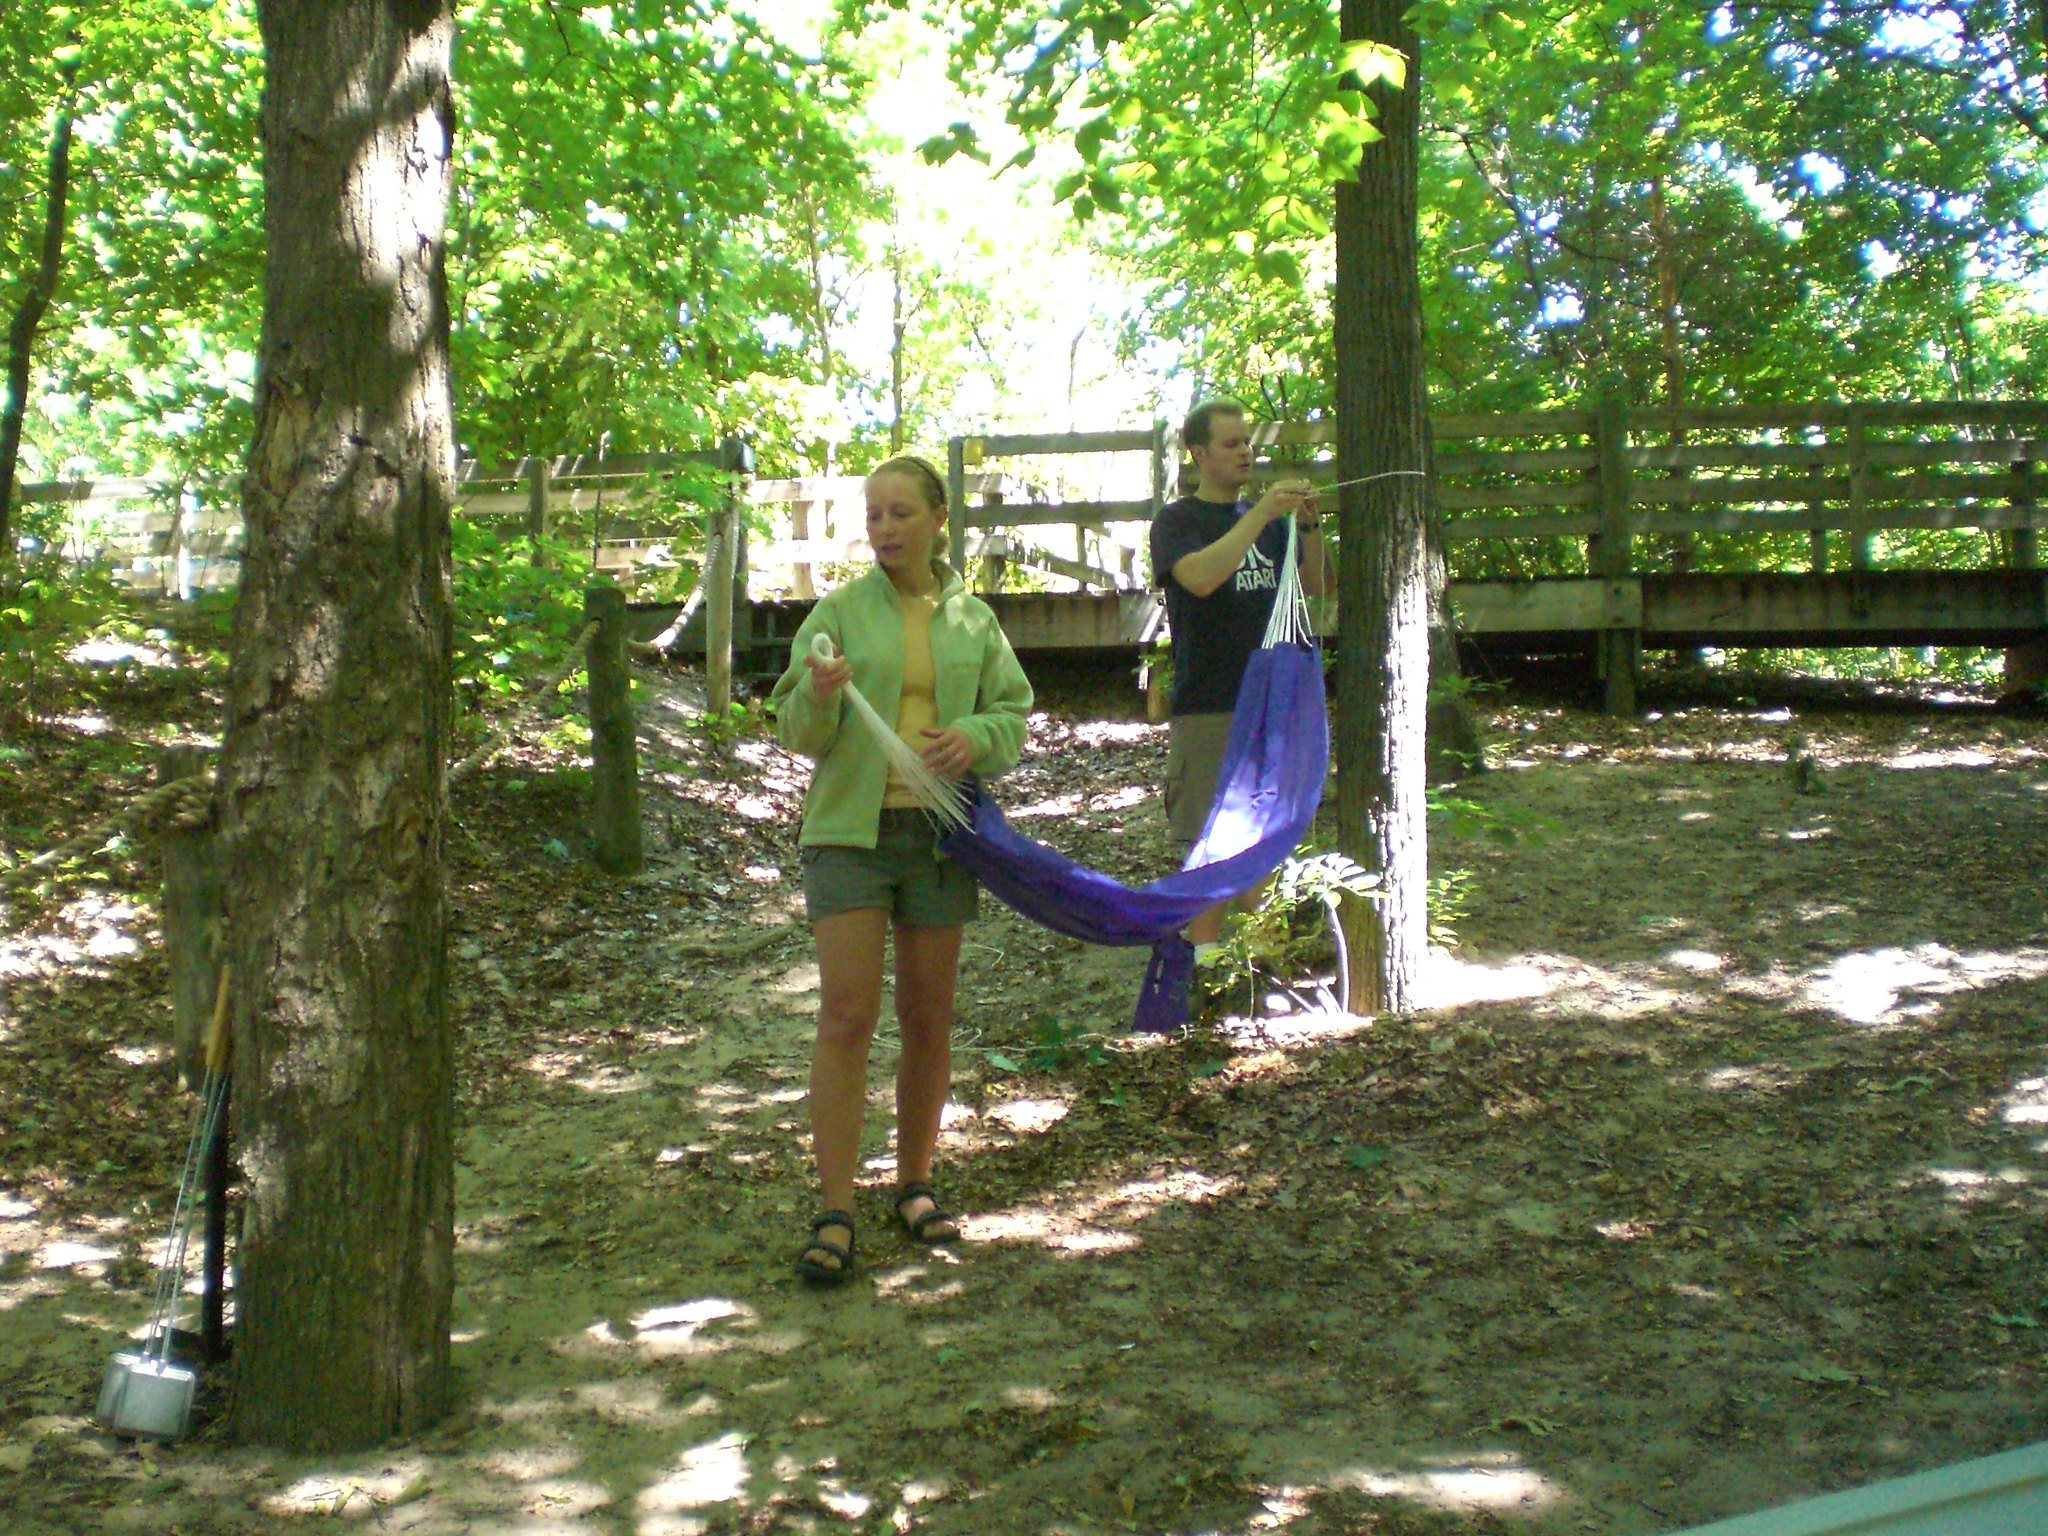 5 reasons camping hammocks are awesome easy to setup PC Matt Stratton via Flickr